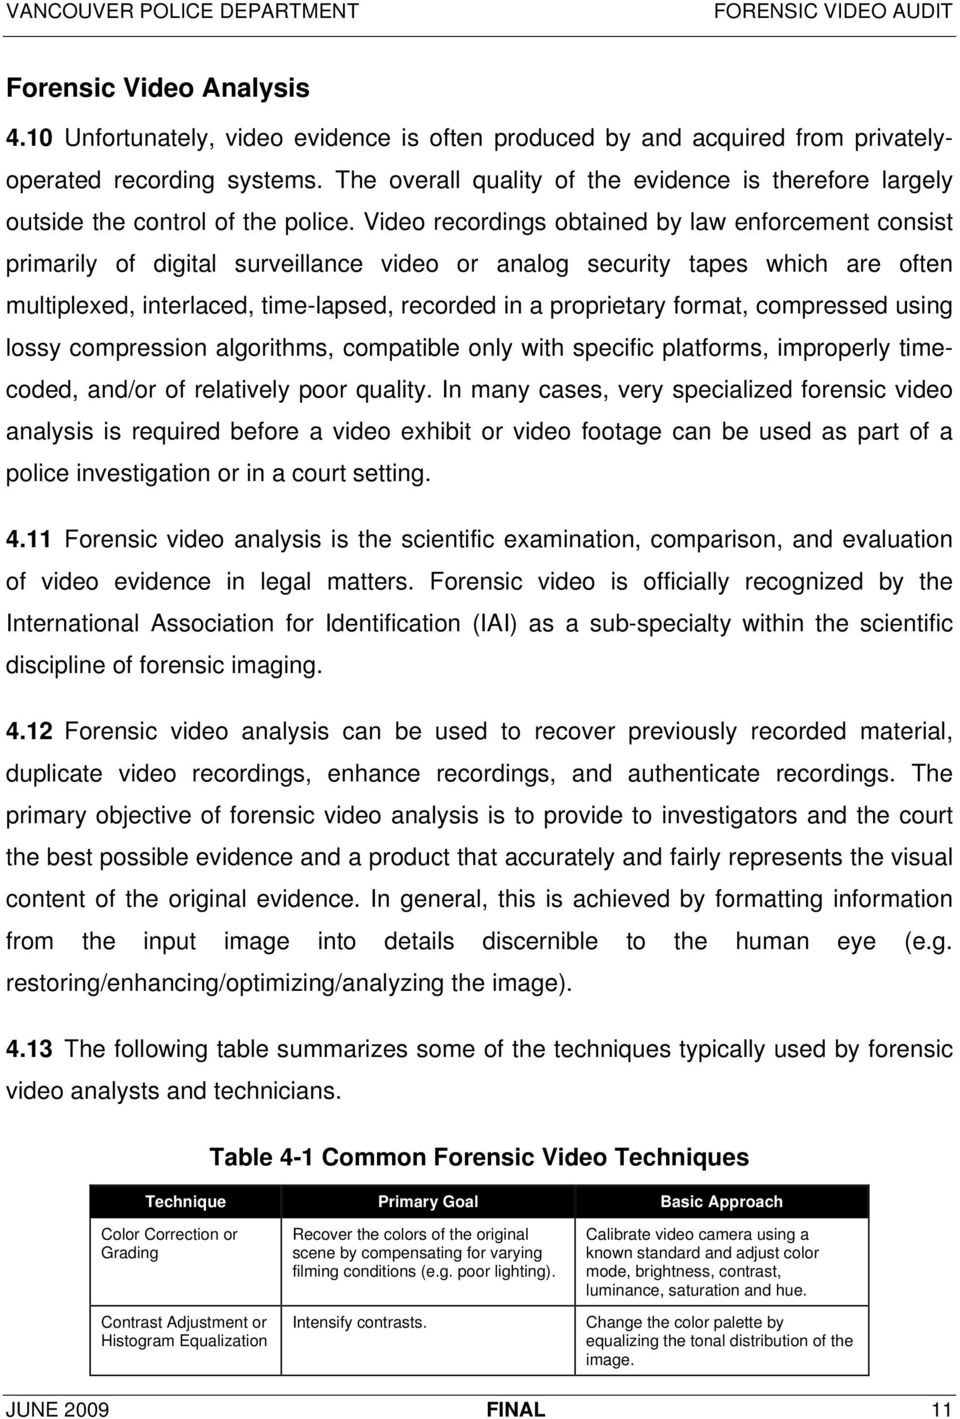 Video recordings obtained by law enforcement consist primarily of digital surveillance video or analog security tapes which are often multiplexed, interlaced, time-lapsed, recorded in a proprietary